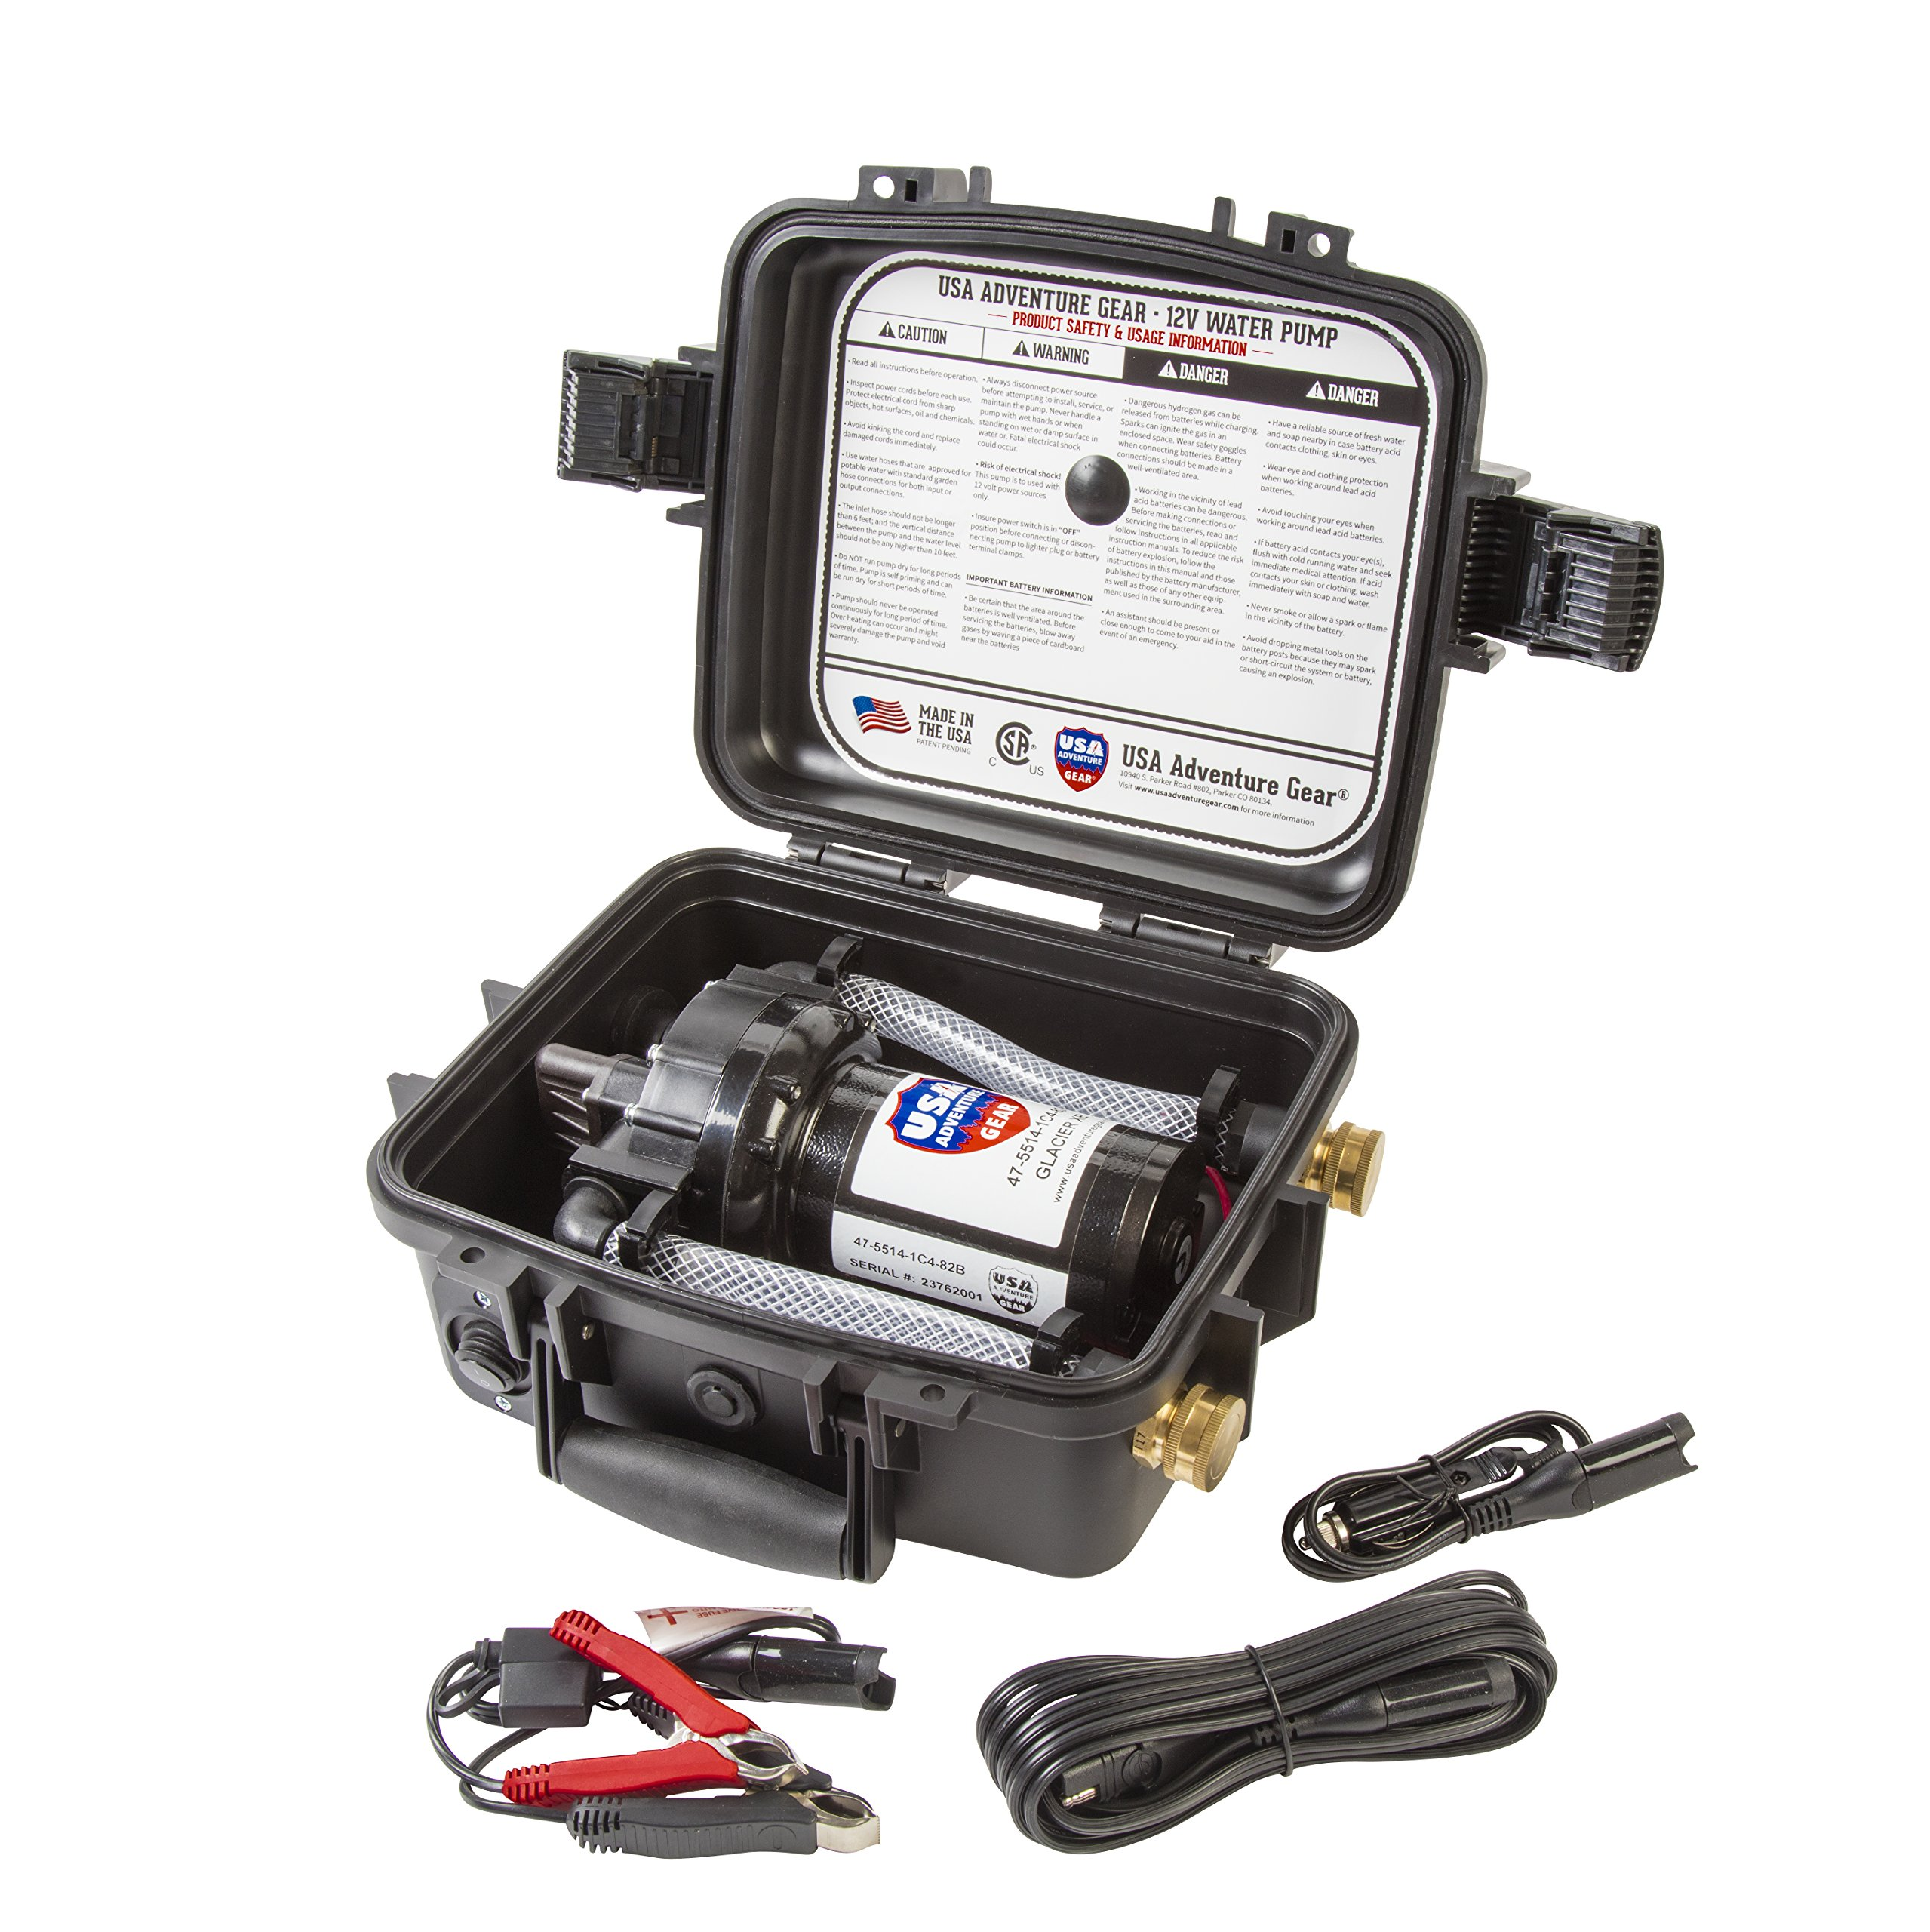 Glacier XE 12v Portable Water Pump featuring USA's 5300 ProGear Professional Grade Pump by USA Adventure Gear